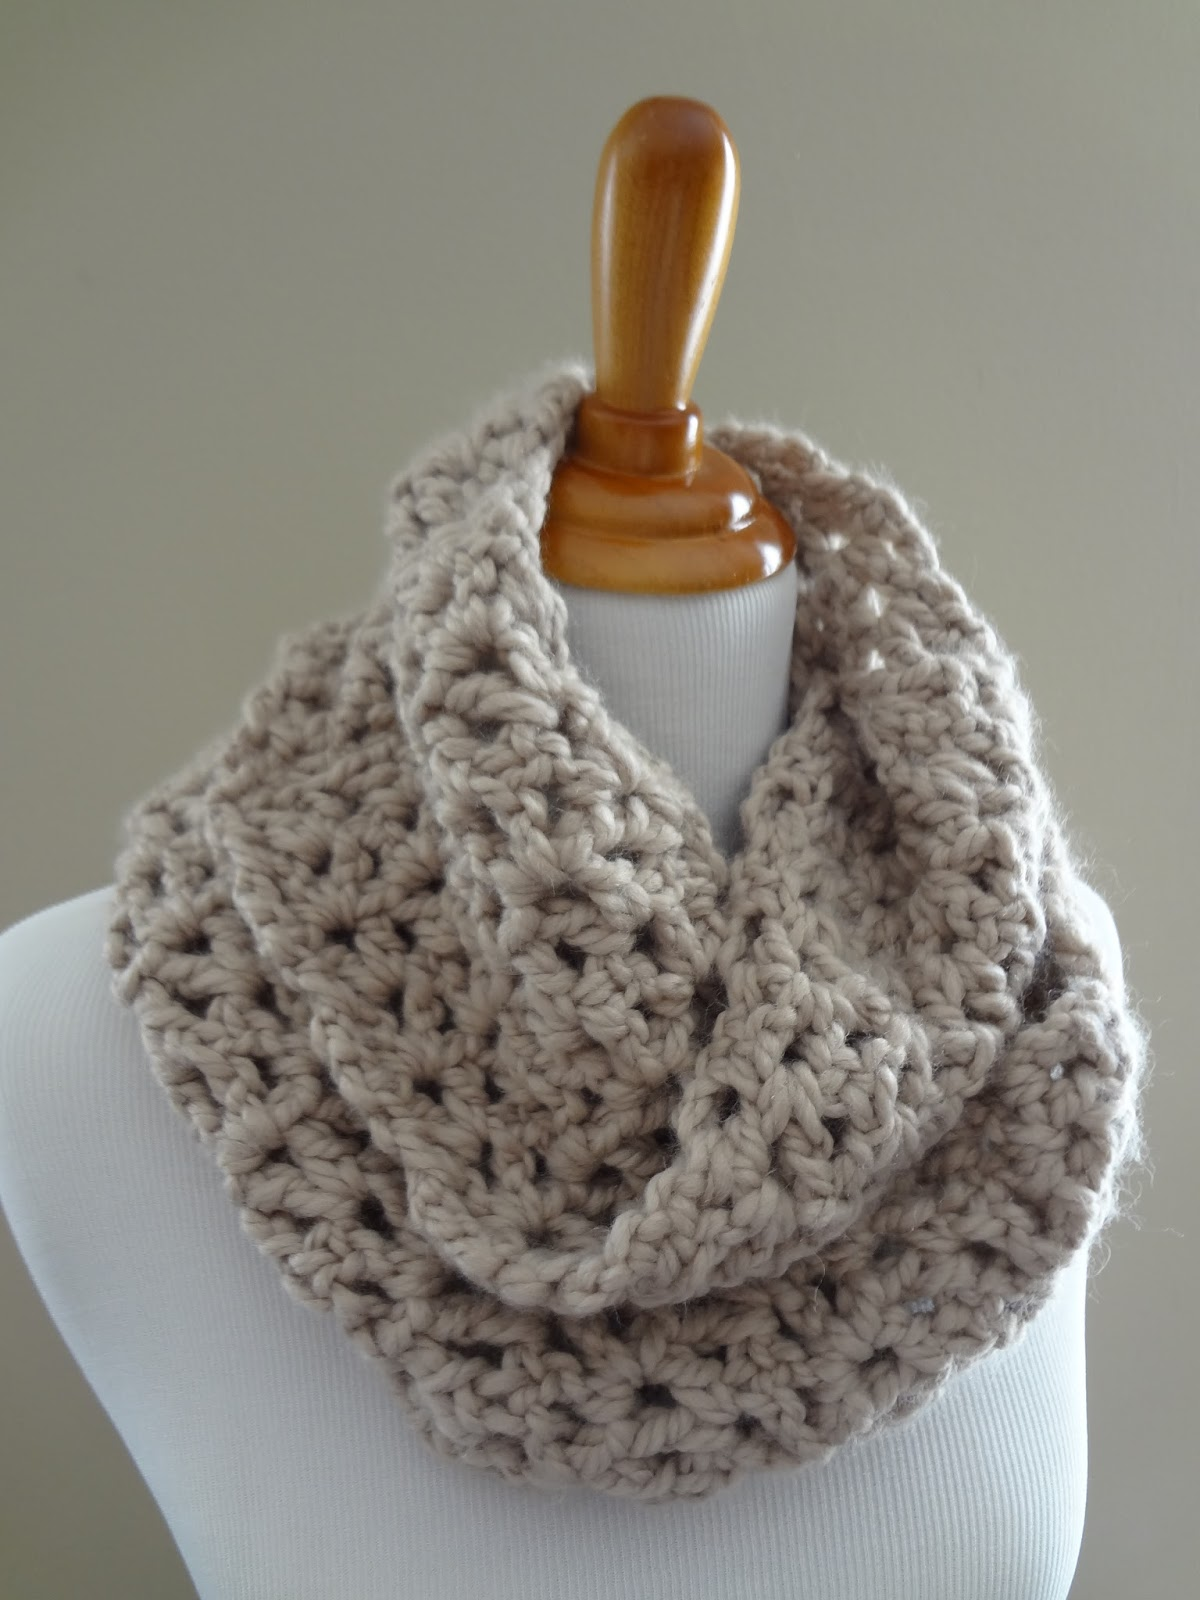 Crocheting Ends Of Infinity Scarf Together : Fiber Flux: Free Crochet Pattern...Pavement Infinity Scarf!